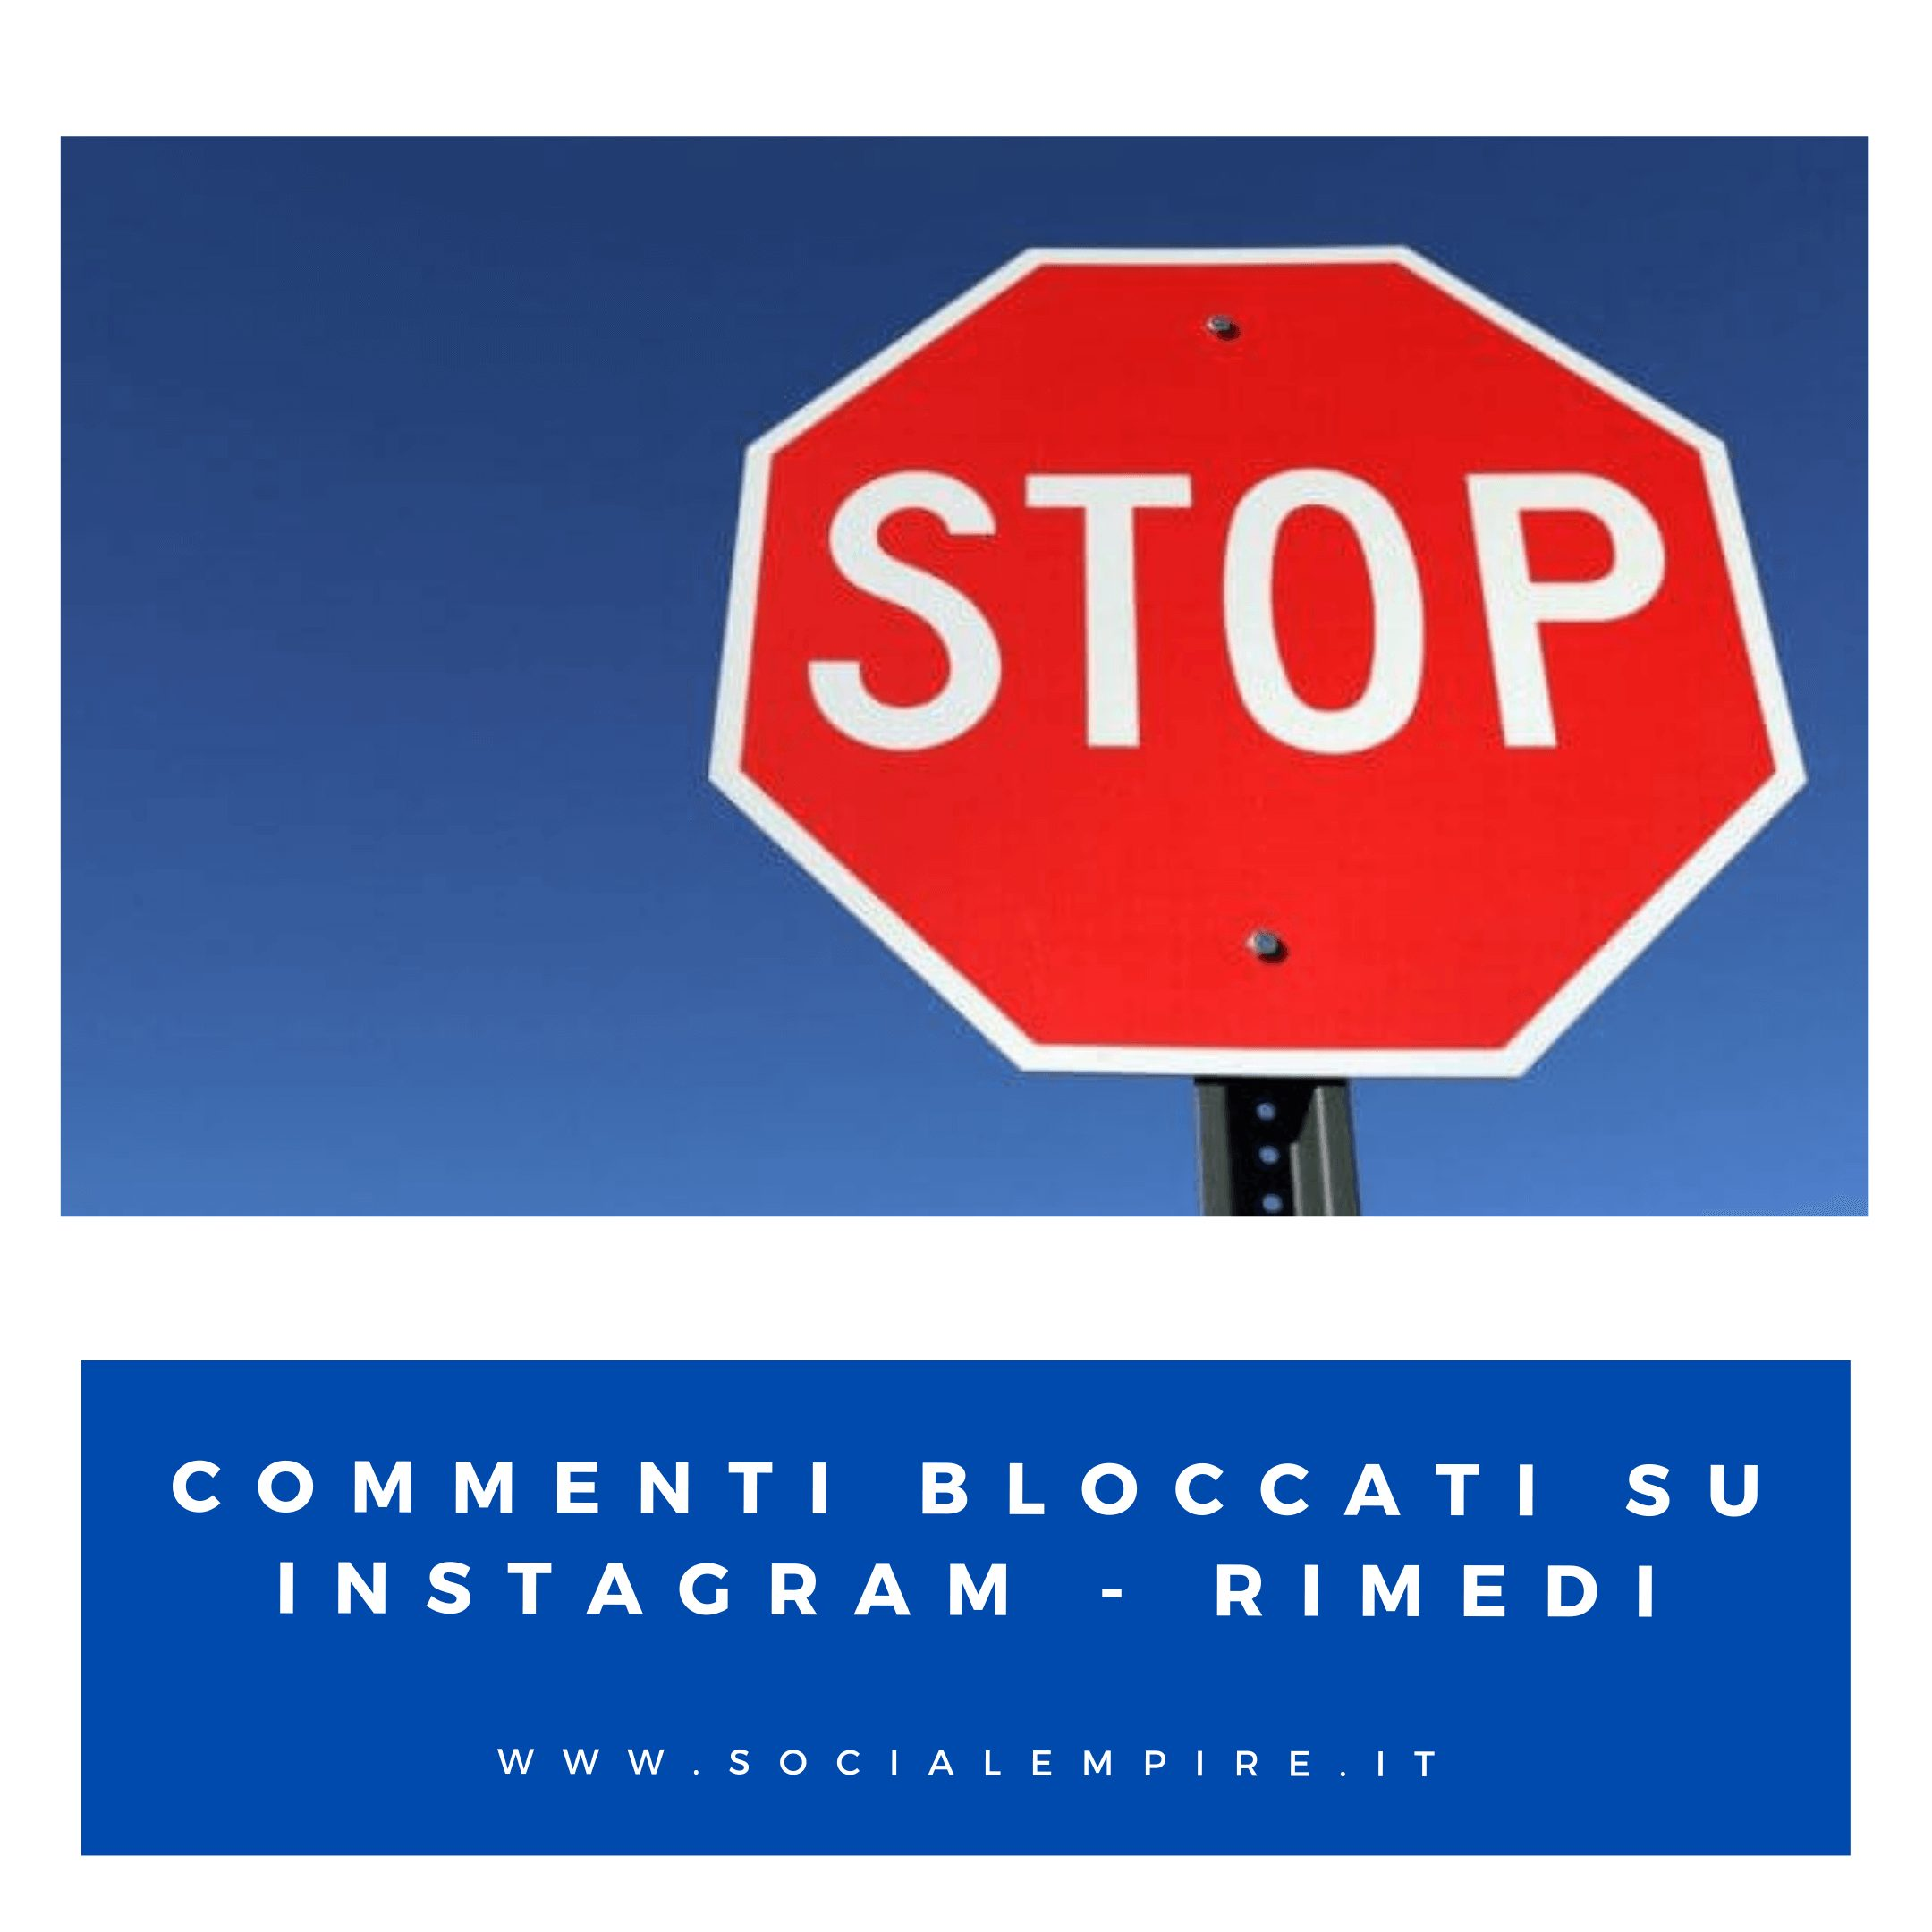 Commenti bloccati su Instagram